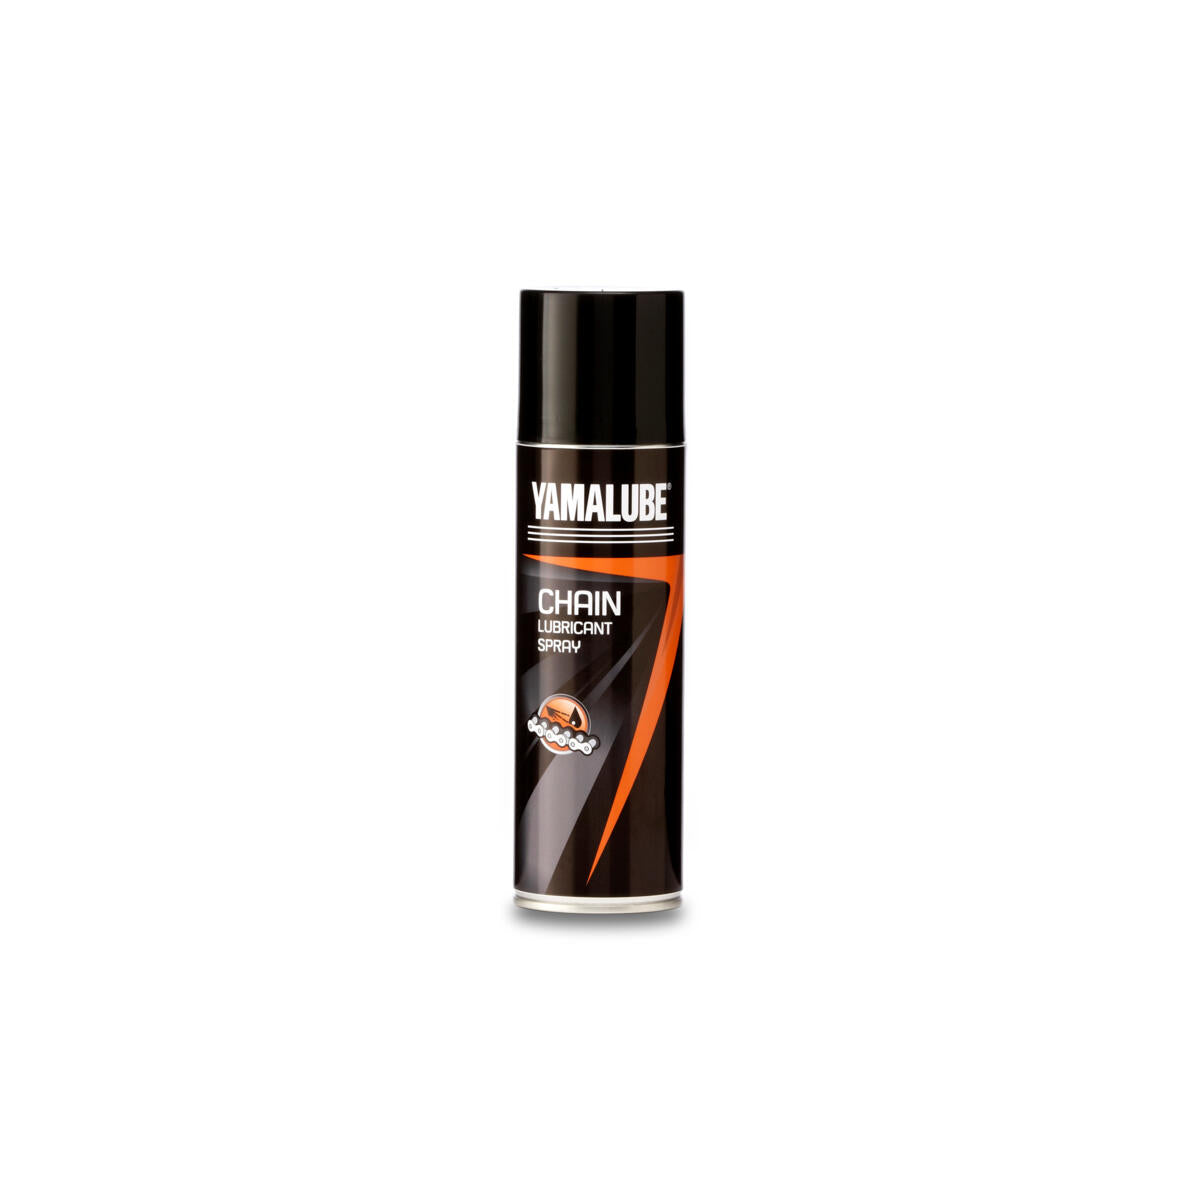 Yamalube - Chain Lubricant Spray